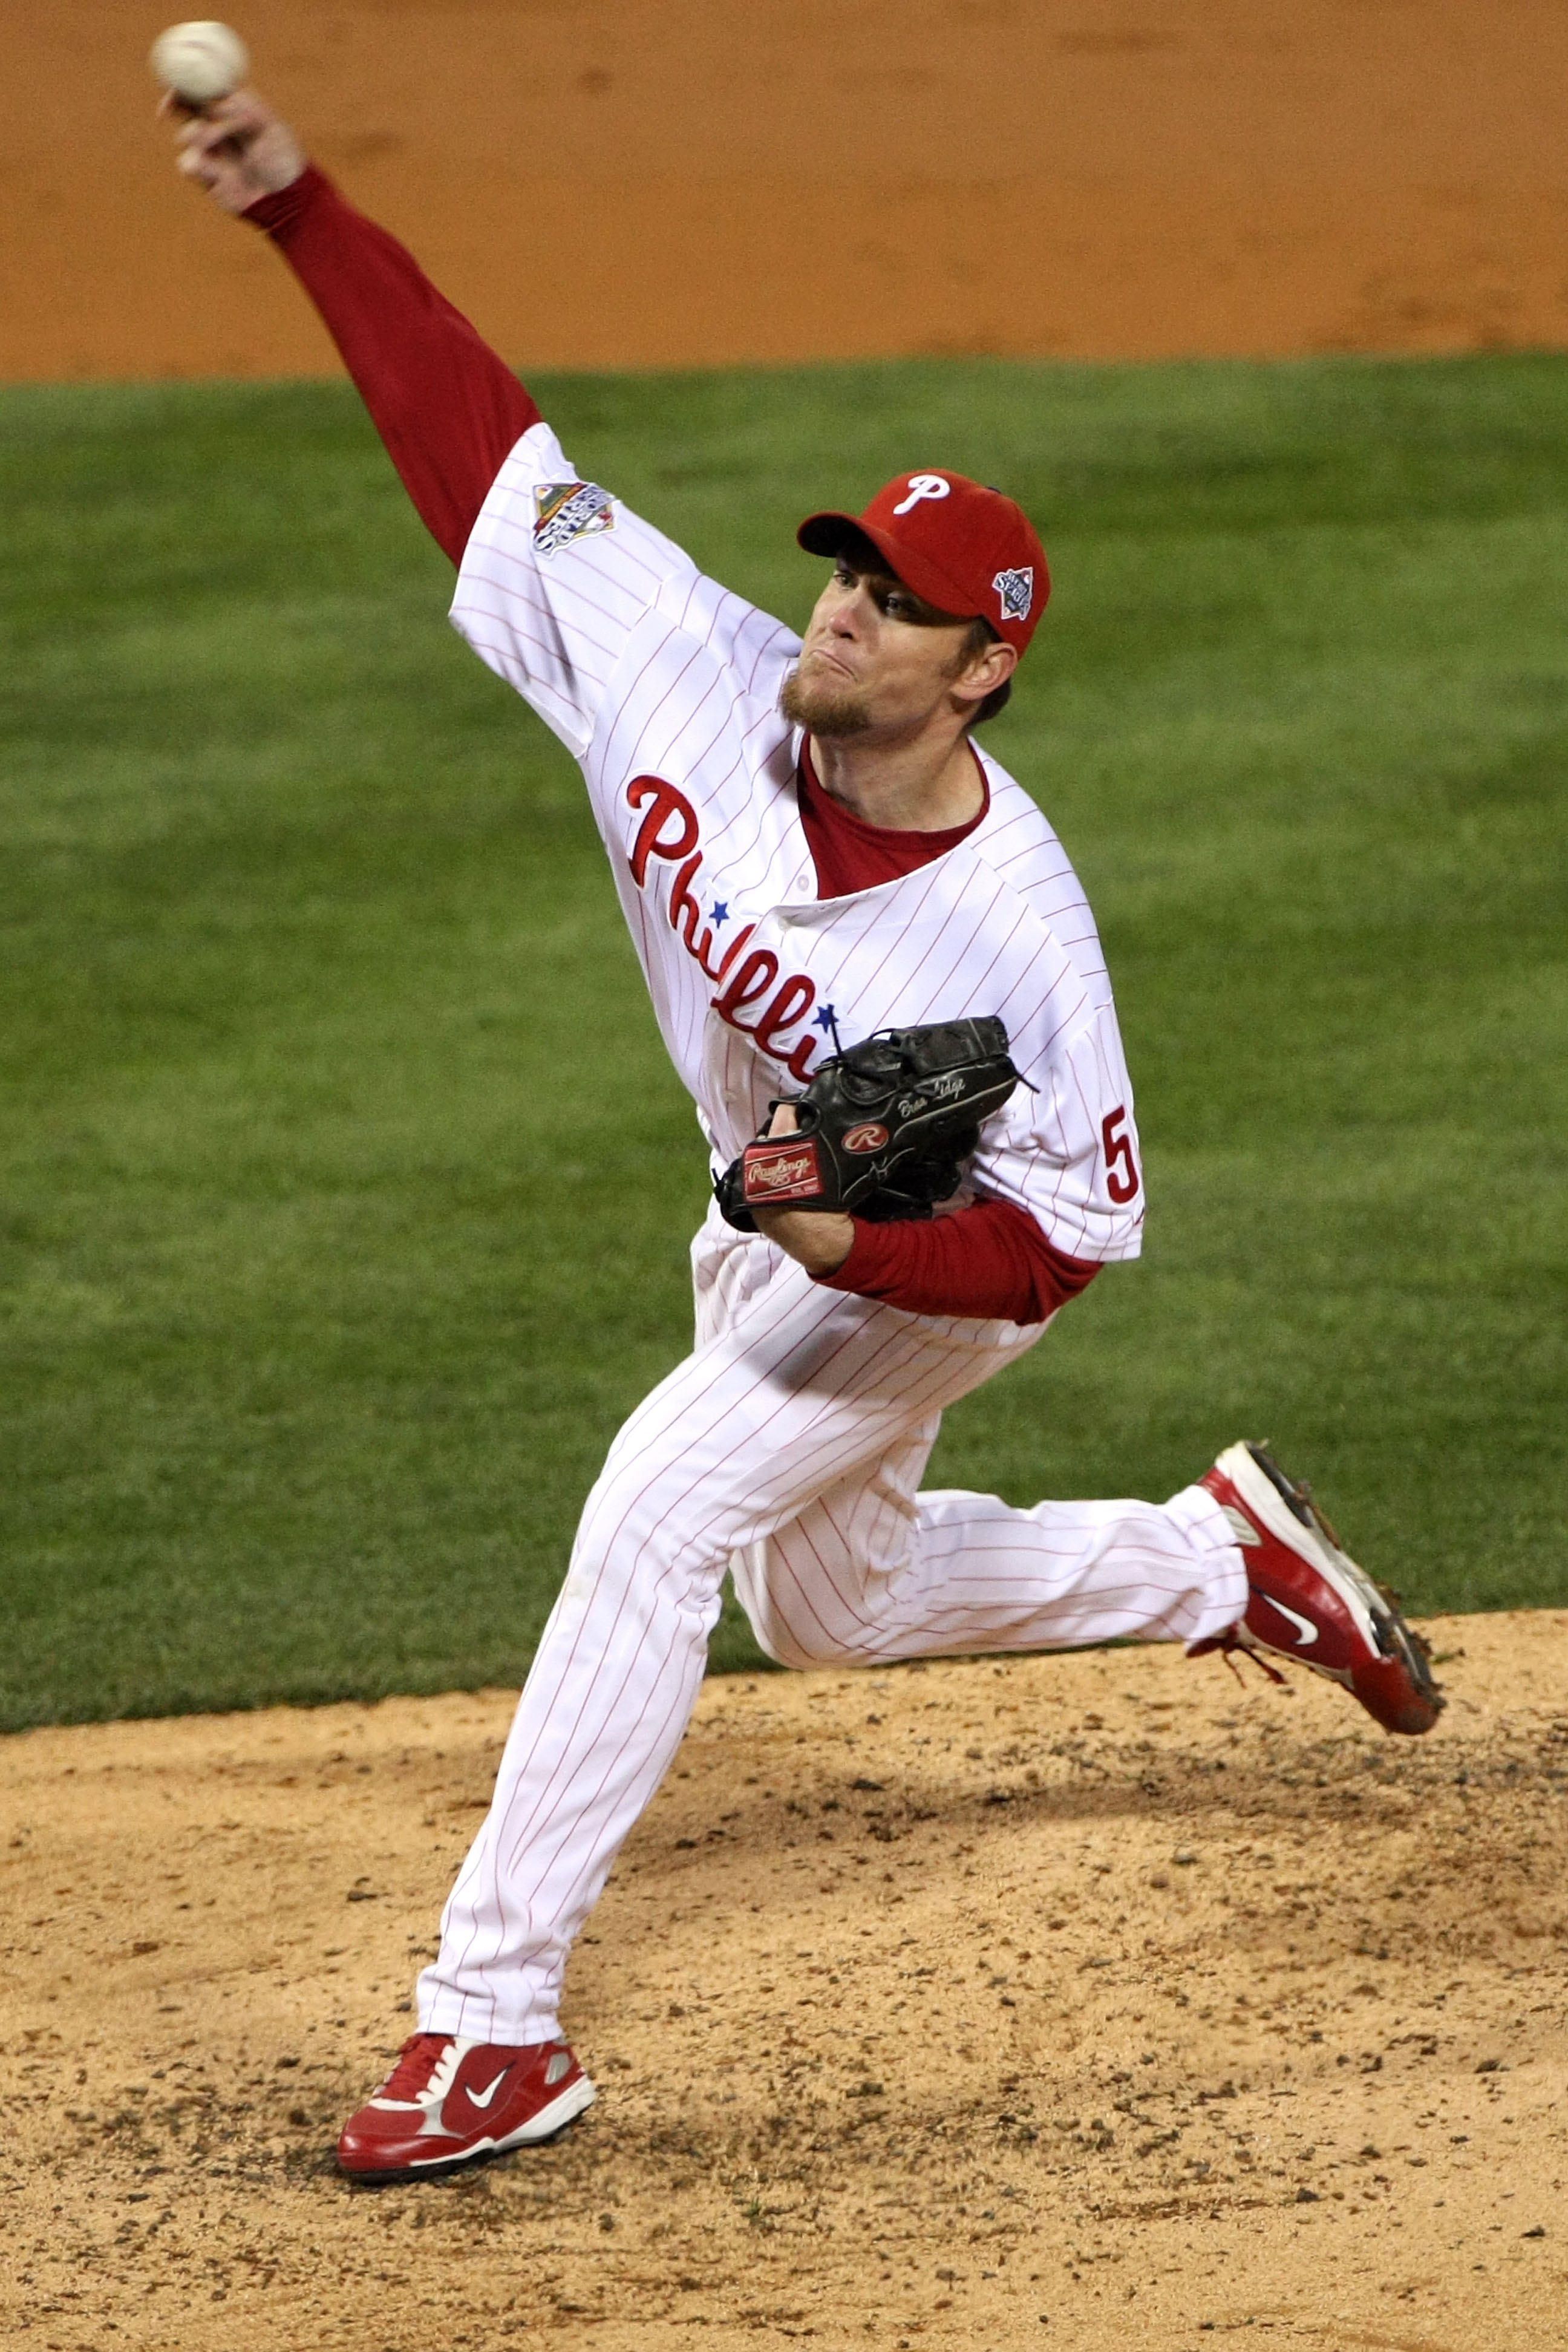 PHILADELPHIA - OCTOBER 29:  Brad Lidge #54 of the Philadelphia Phillies throws a pitch against the Tampa Bay Rays during the continuation of game five of the 2008 MLB World Series on October 29, 2008 at Citizens Bank Park in Philadelphia, Pennsylvania. Th